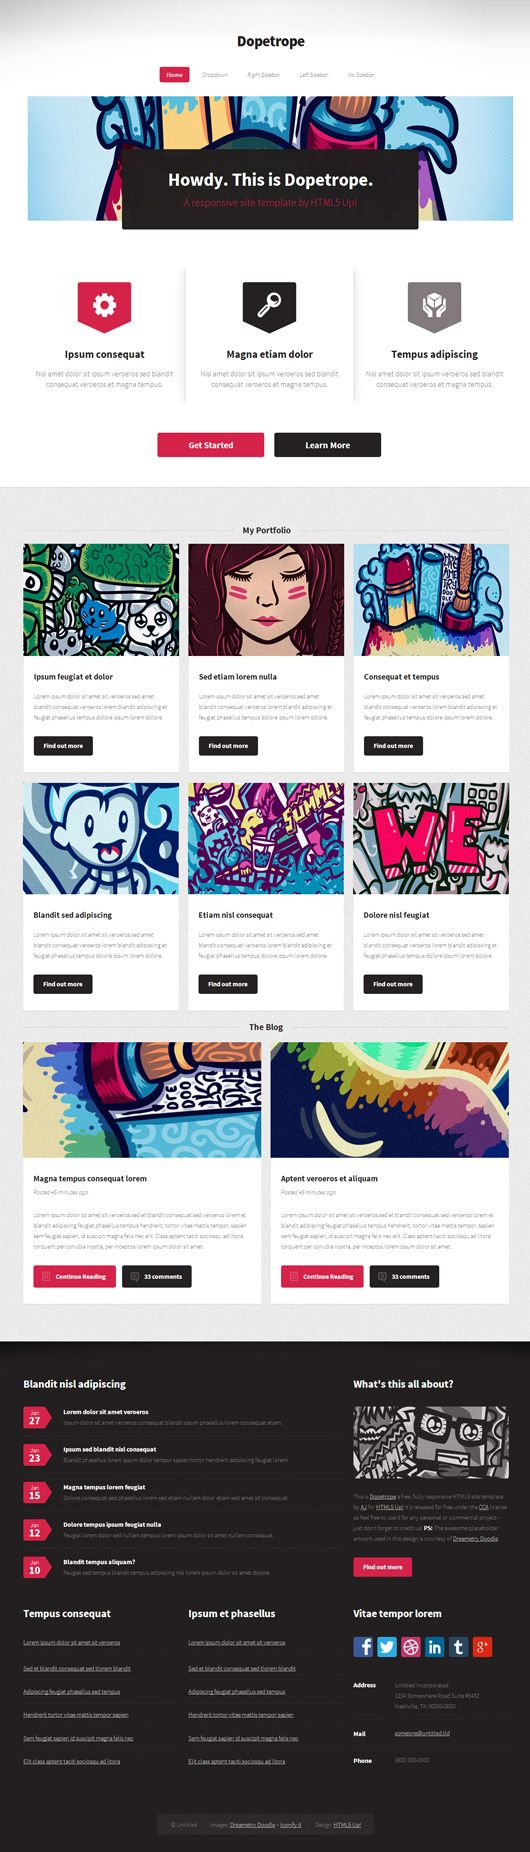 Free Responsive PSD Website Templates Webdesign Resourses - Full responsive website templates